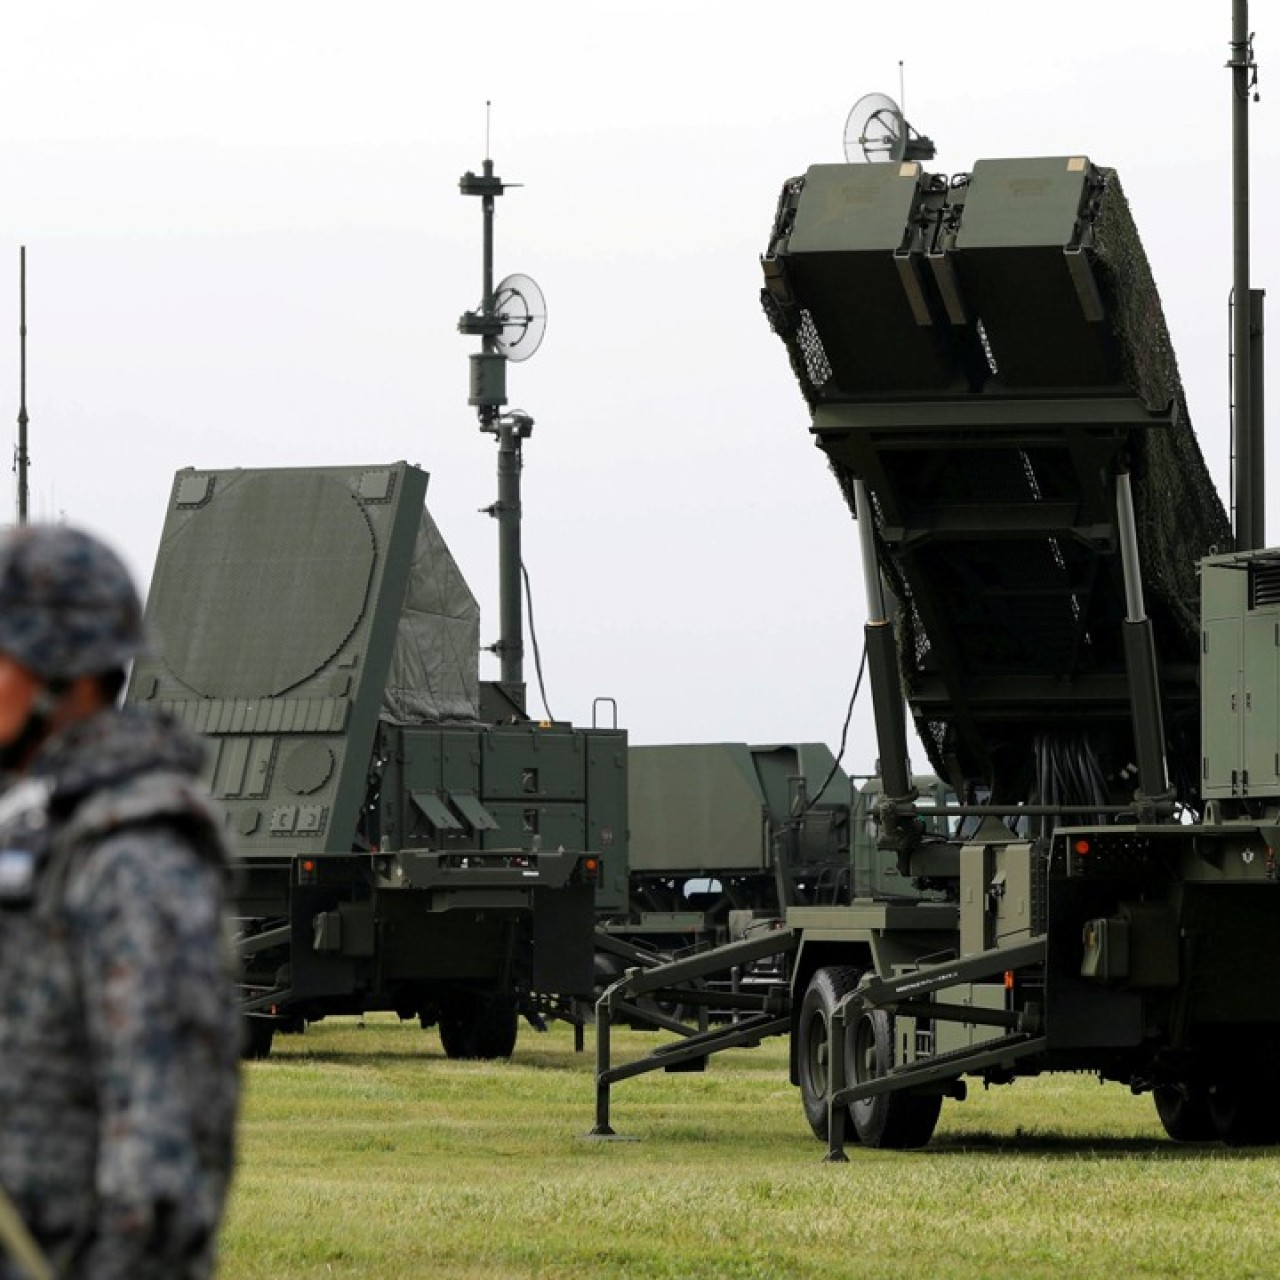 Japan is set to spend billions of dollars on US arms to narrow its